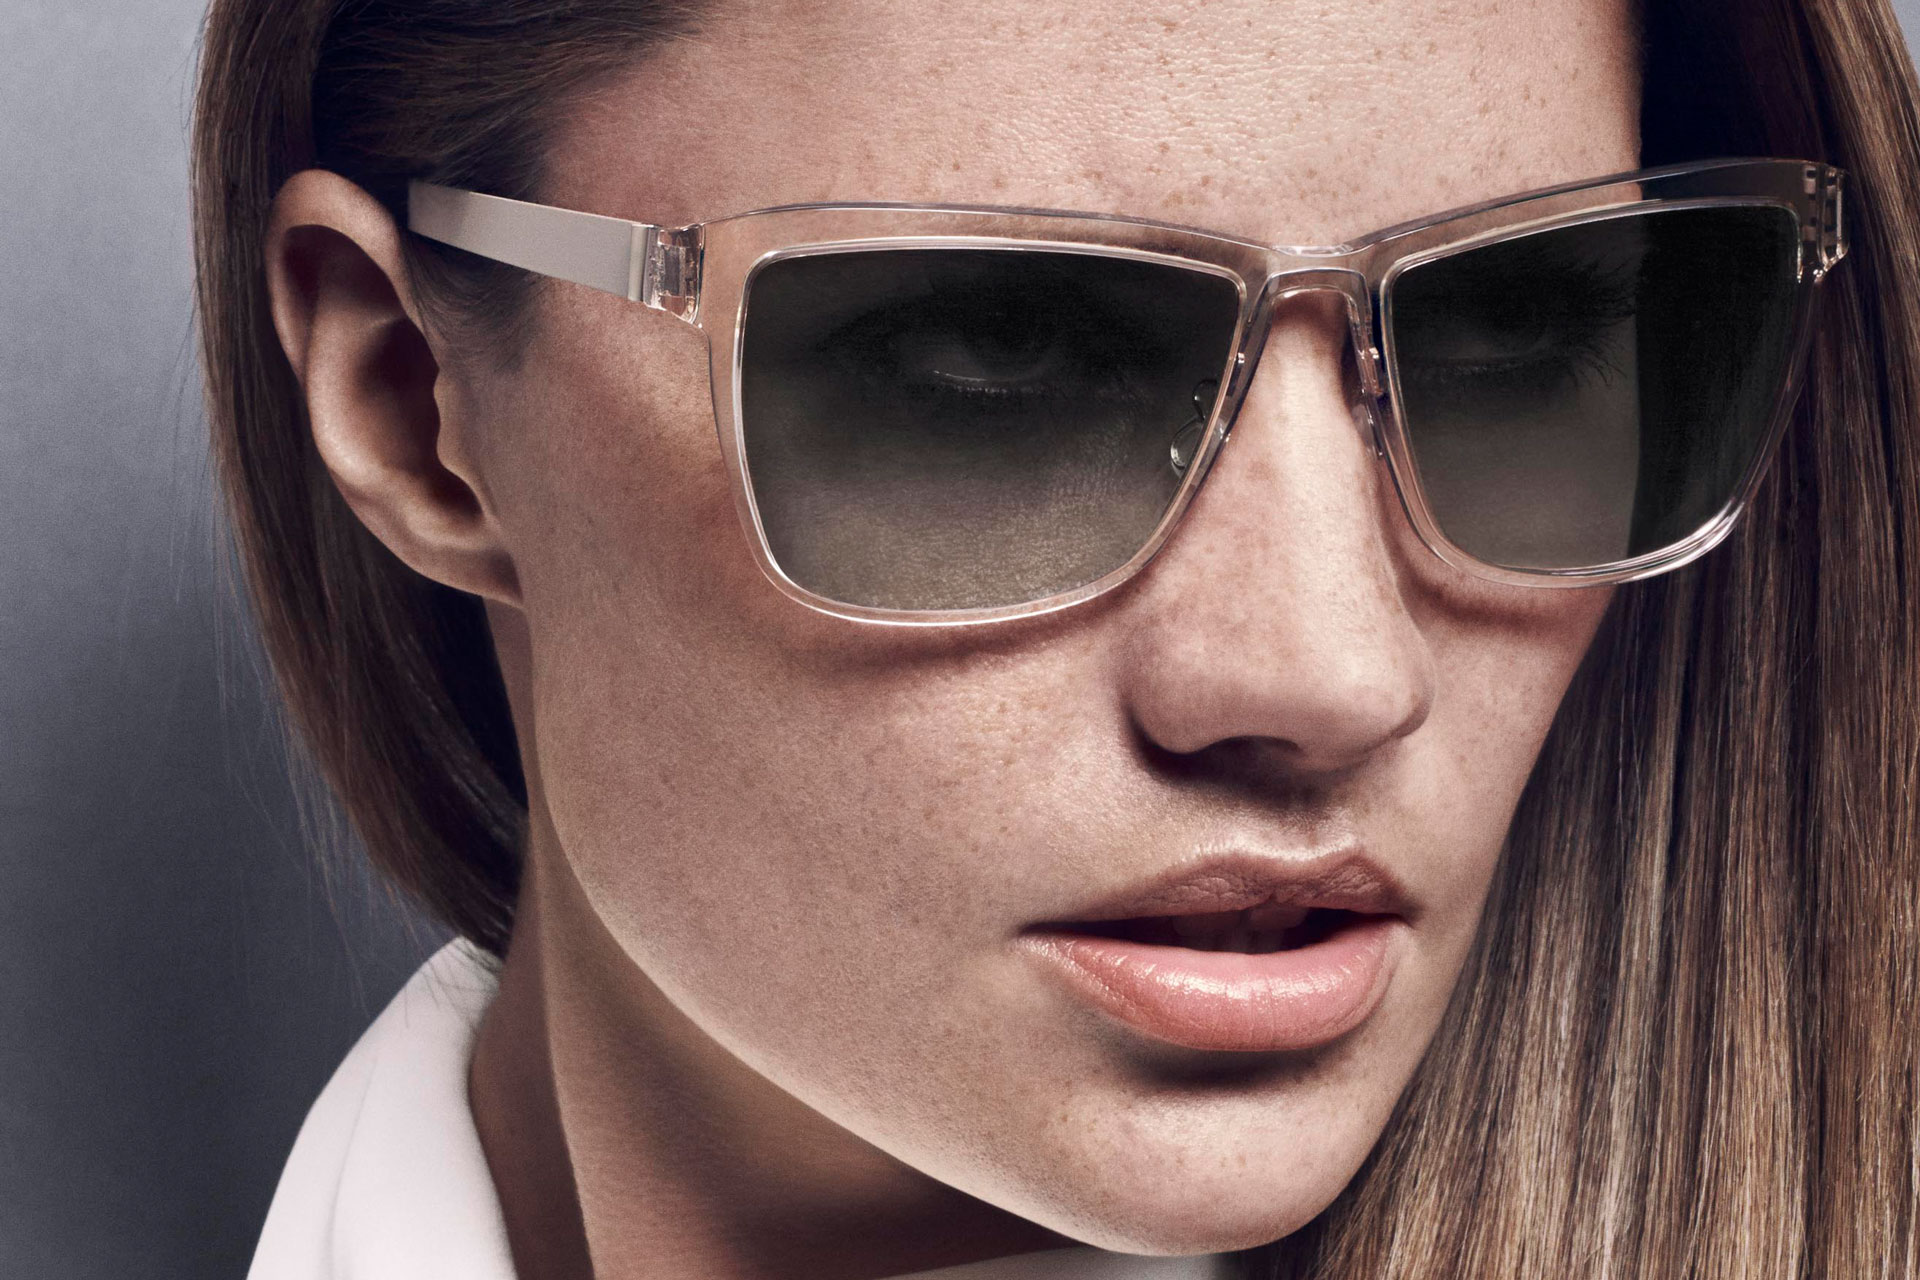 cdf25ef0f902 Simplicity and elegance  LINDBERG spectacle frames and ZEISS sunglass lenses  - a summer hit